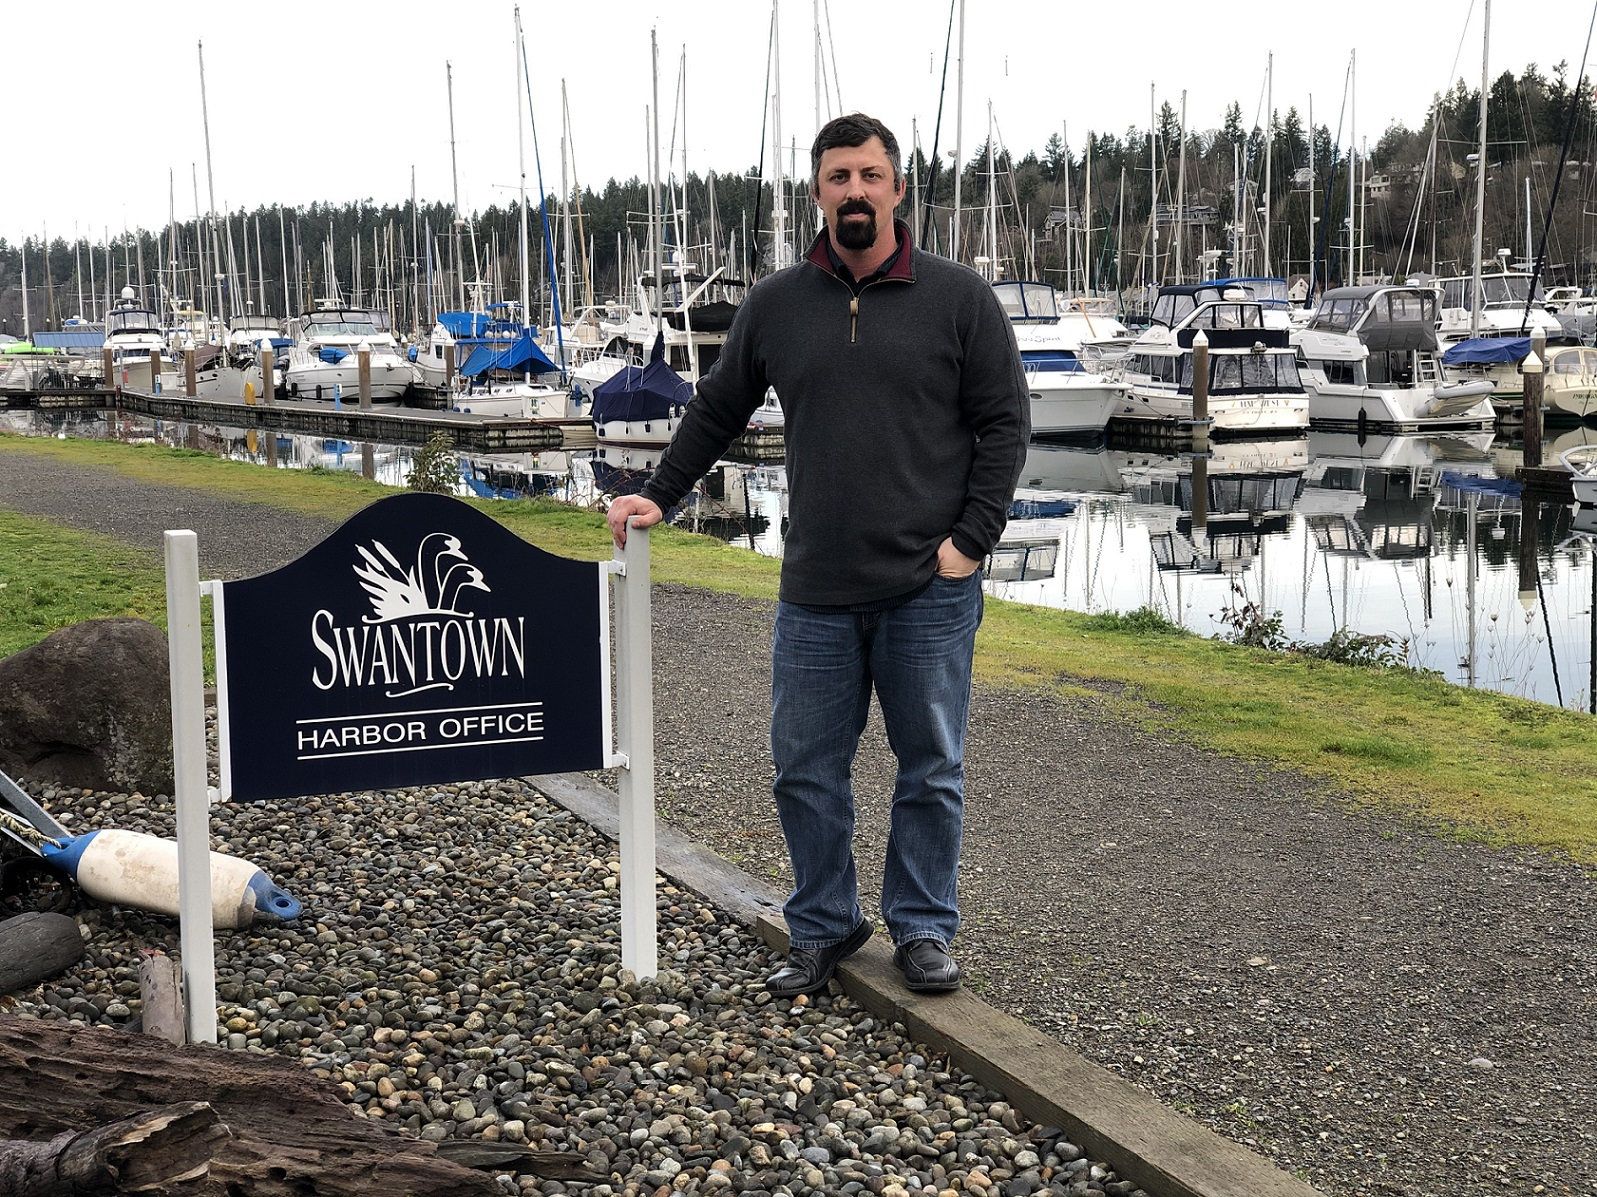 Port Angeles Christmas Bazaars 2020 Port of Olympia Appoints New Harbor Manager   ThurstonTalk